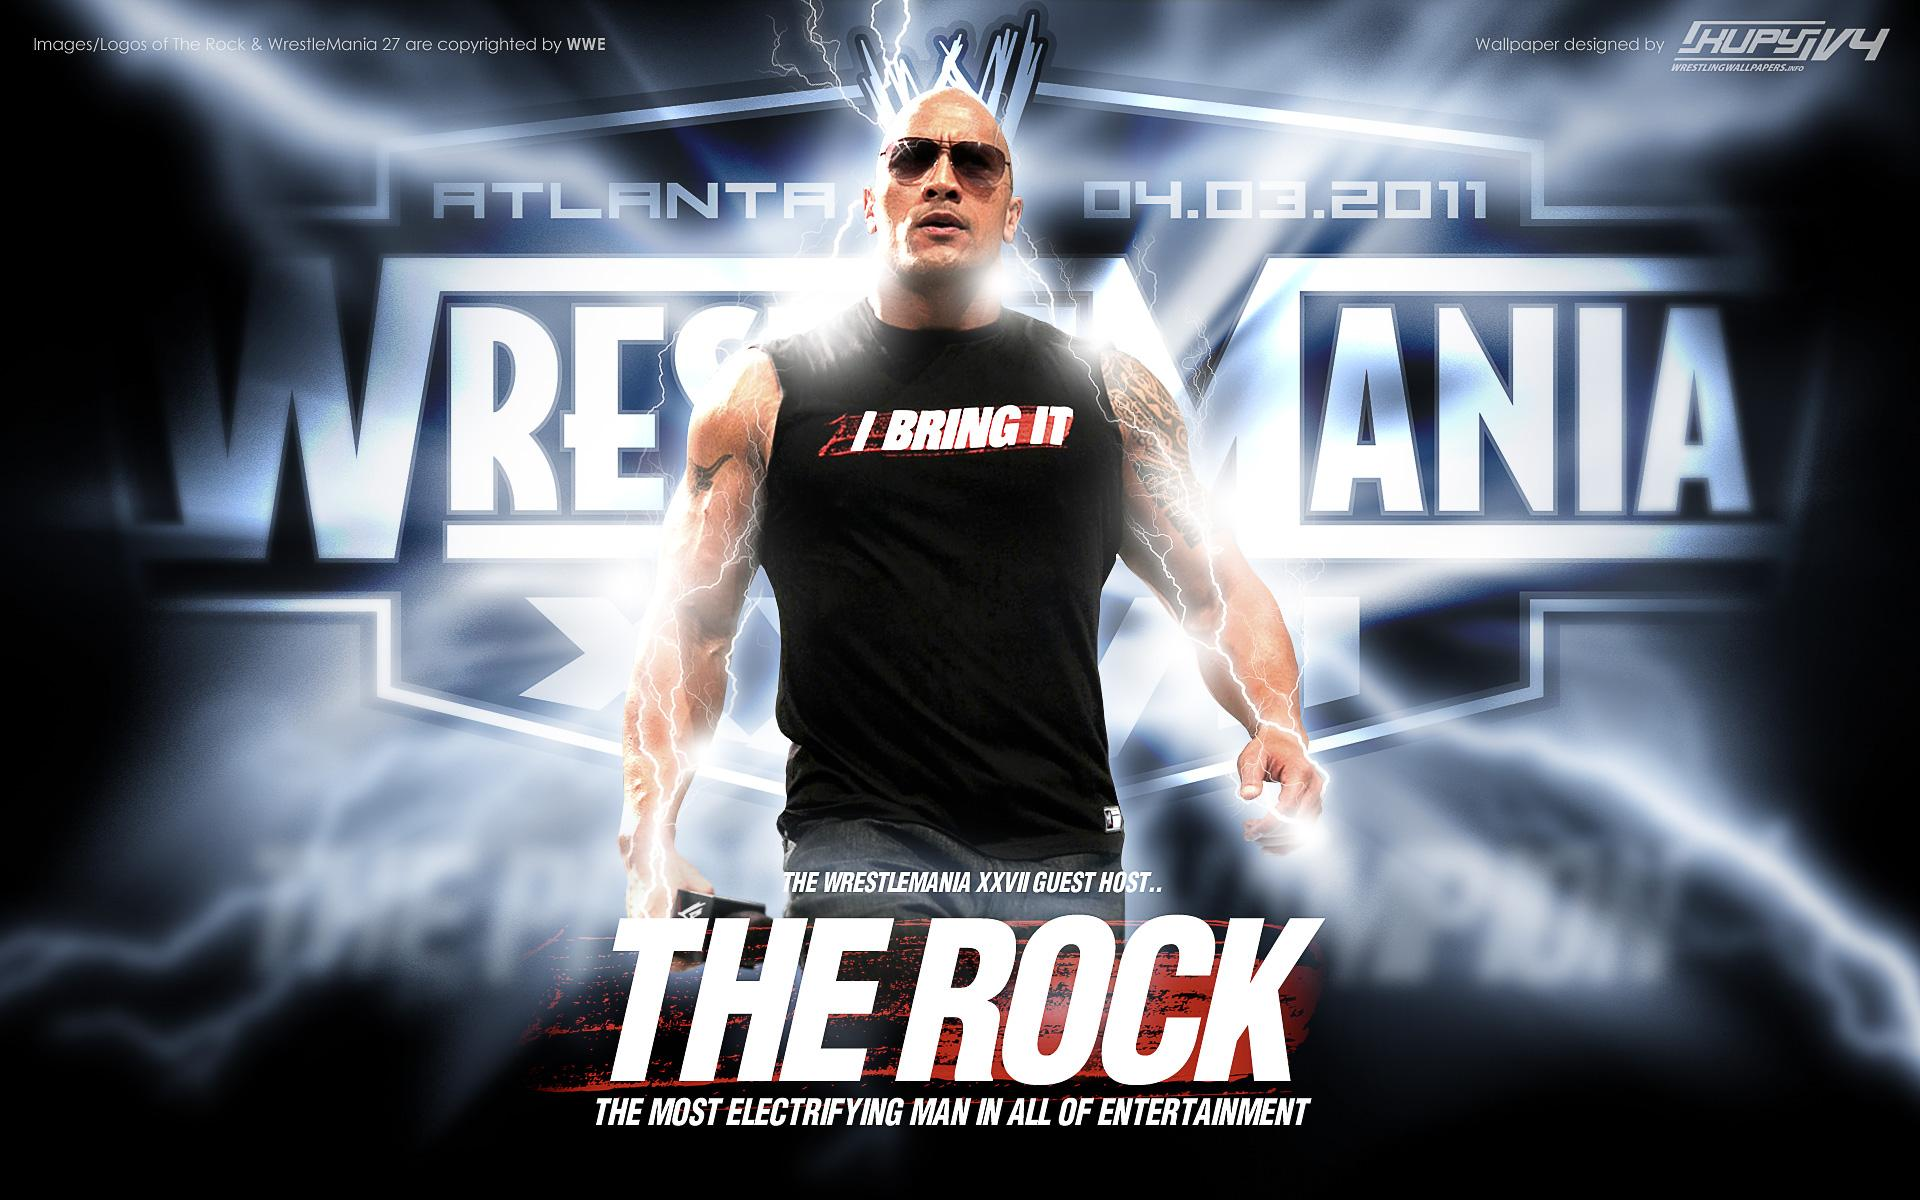 NEW WrestleMania 27 The Rock wallpaper!